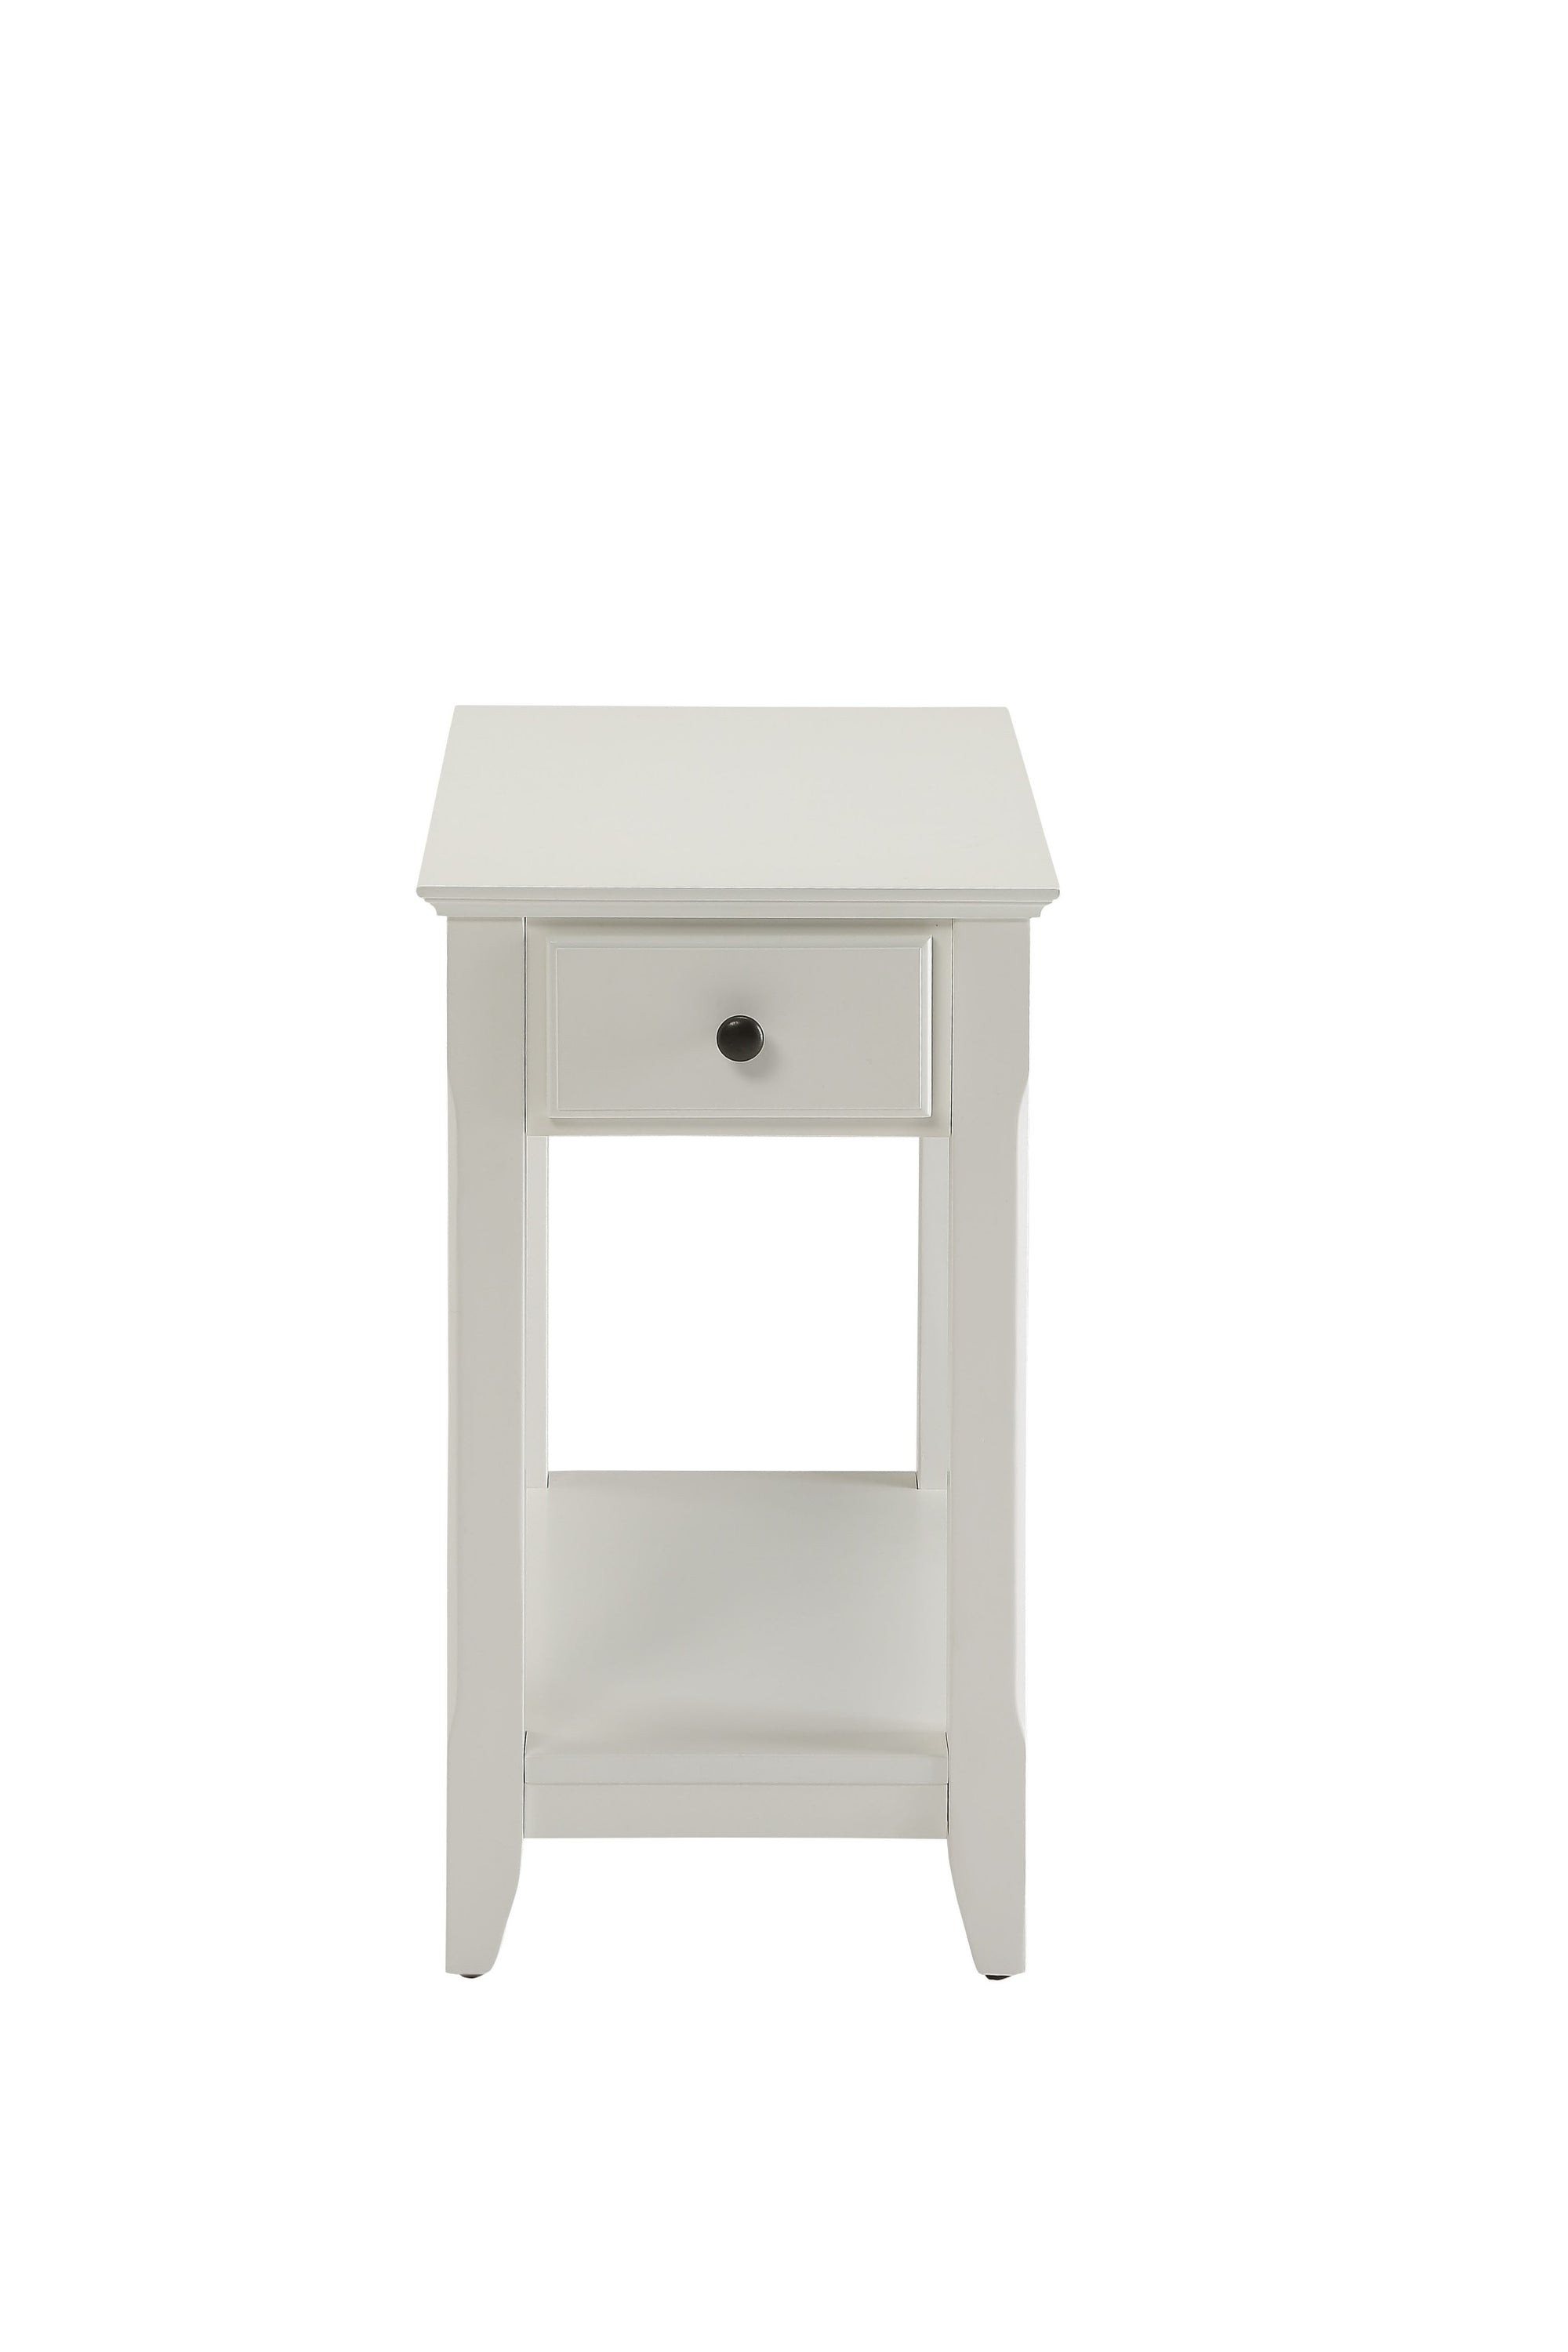 "13"" X 22"" X 23"" White Wood Veneer Side Table"